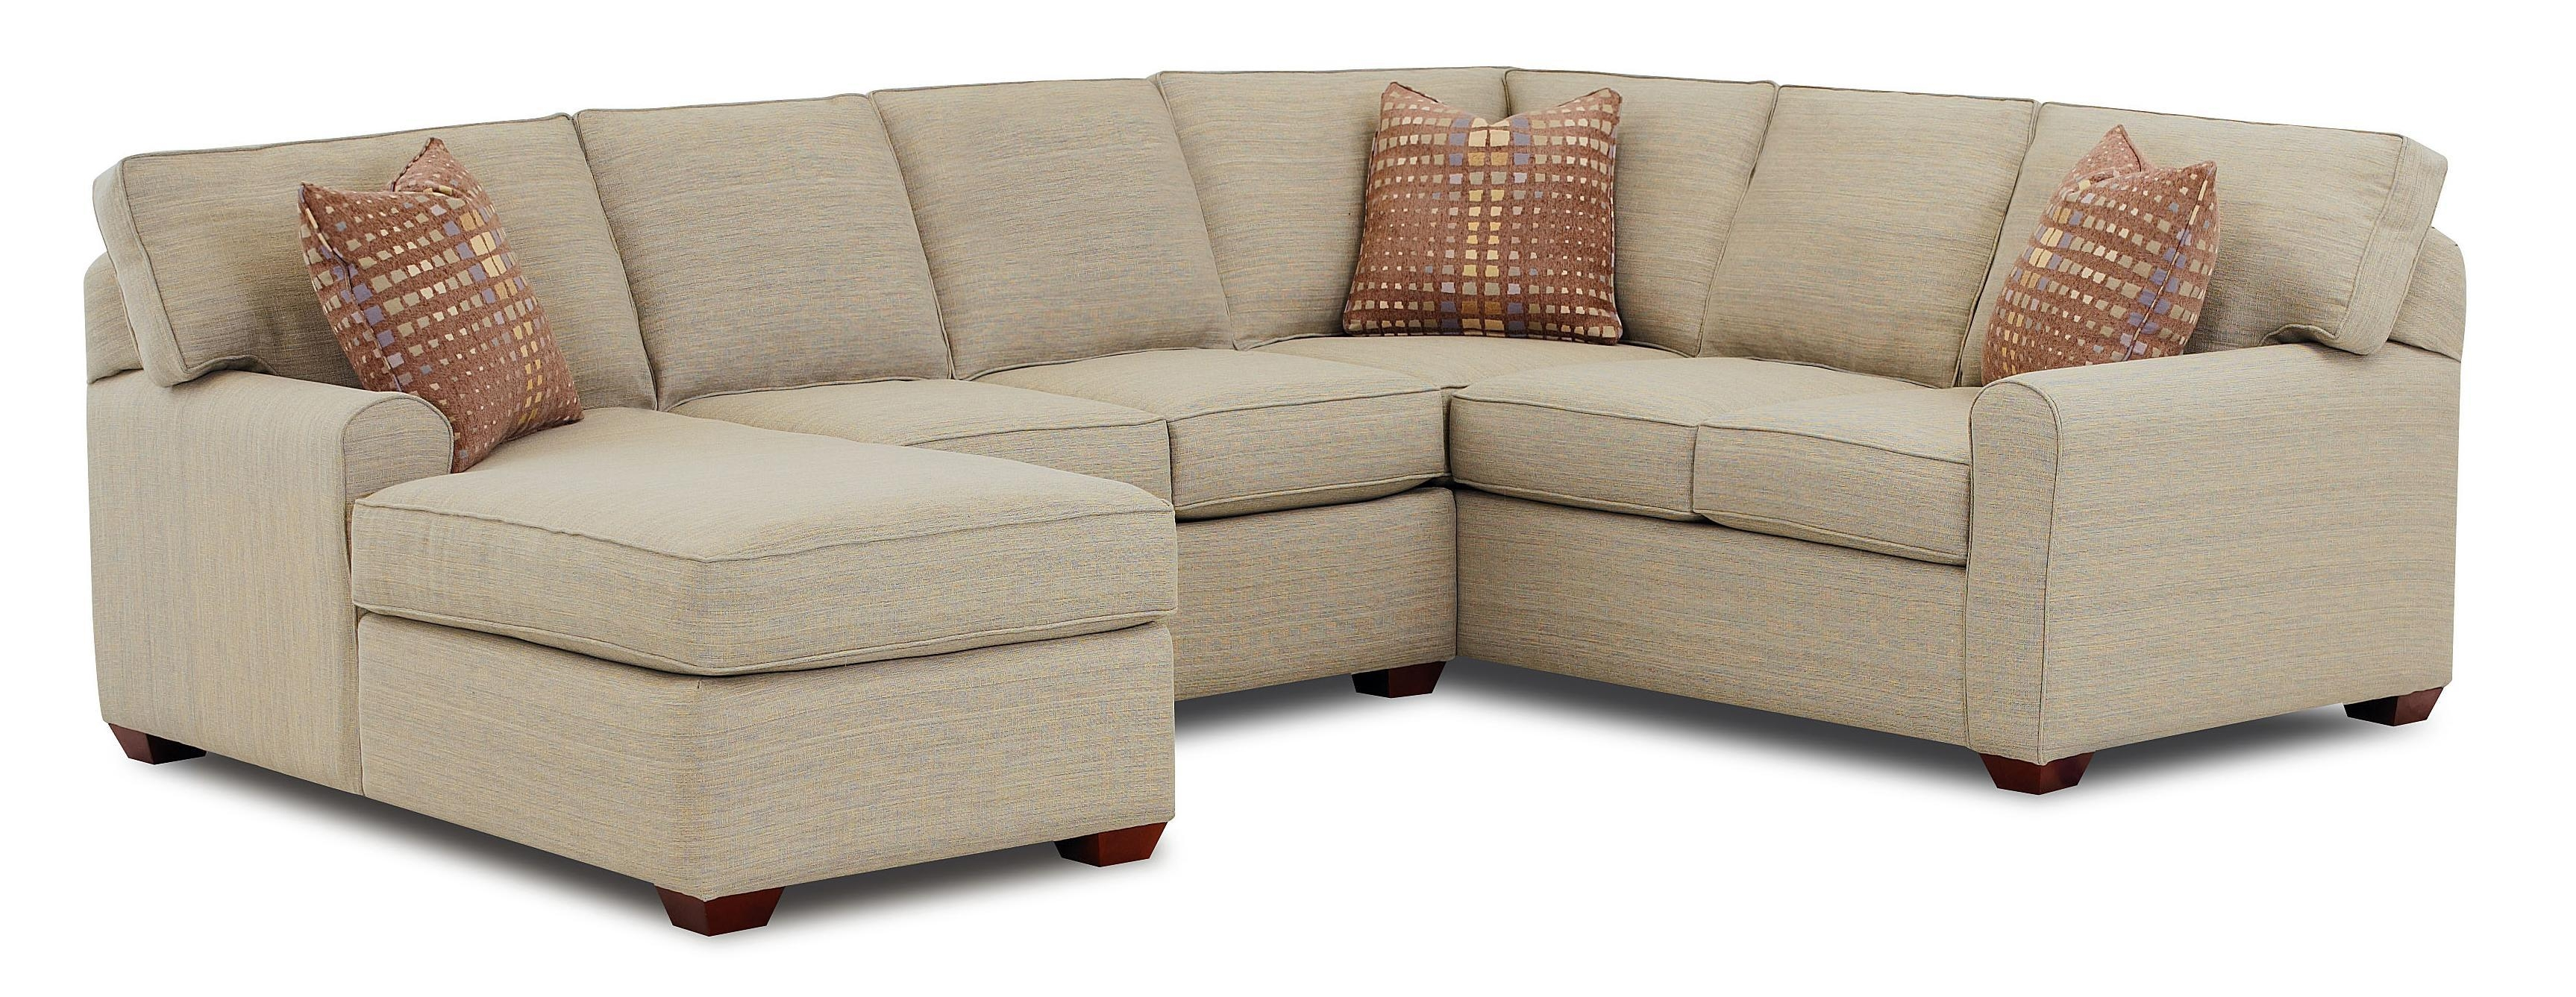 Sectional Sofa With Left Facing Chaise Loungeklaussner | Wolf Throughout Sofas With Chaise Longue (Image 12 of 20)